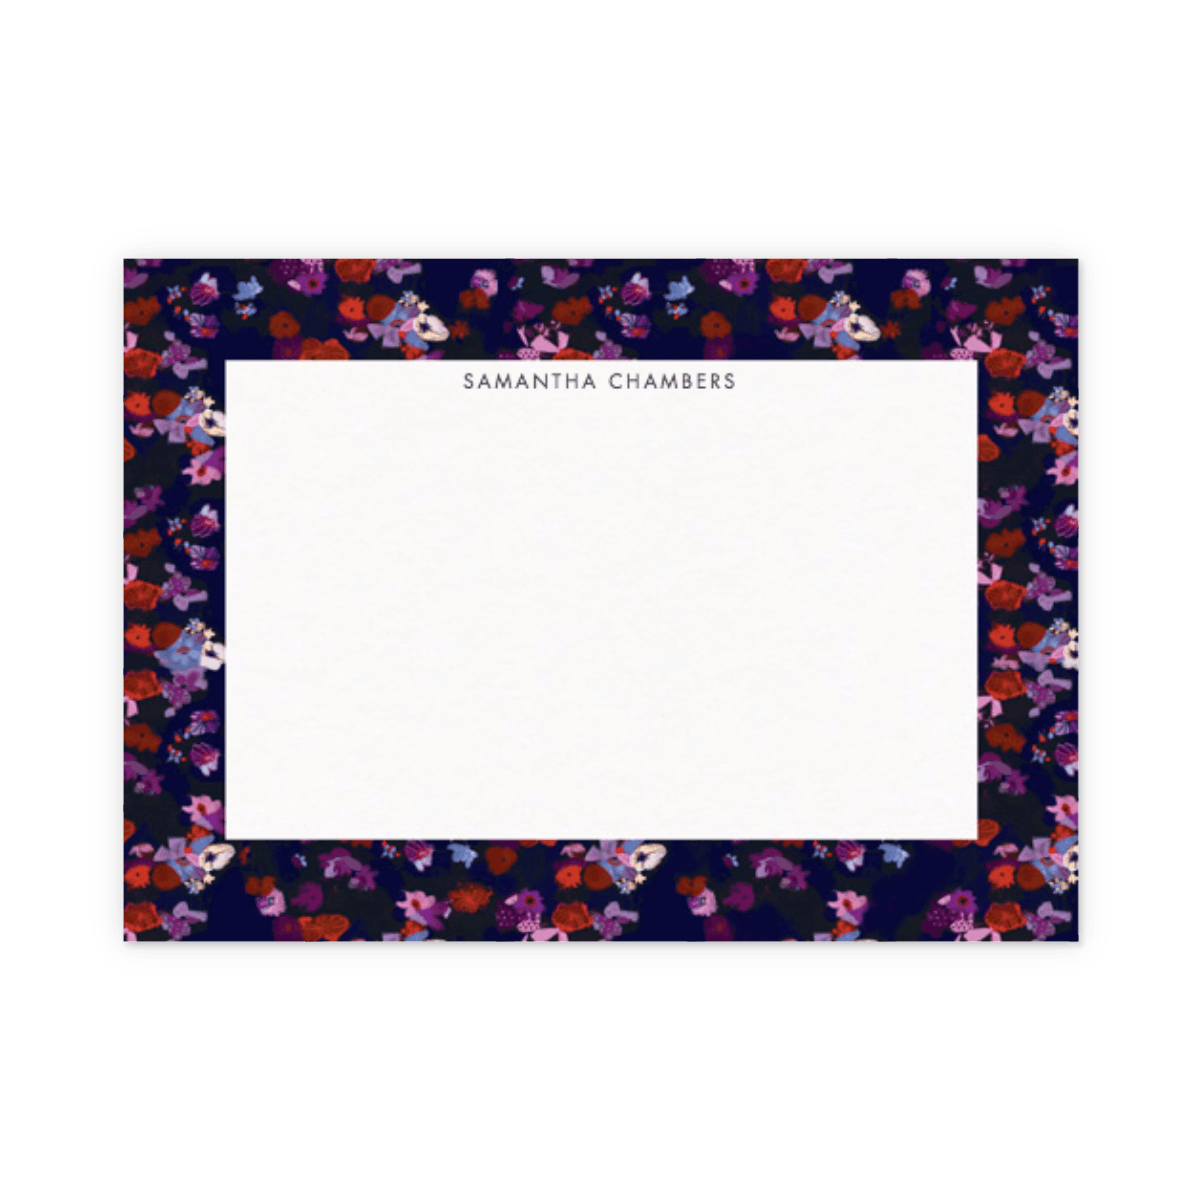 Https%3a%2f%2fwww.papier.com%2fproduct image%2f29232%2f10%2fpurple floral 7342 front 1508423504.png?ixlib=rb 1.1